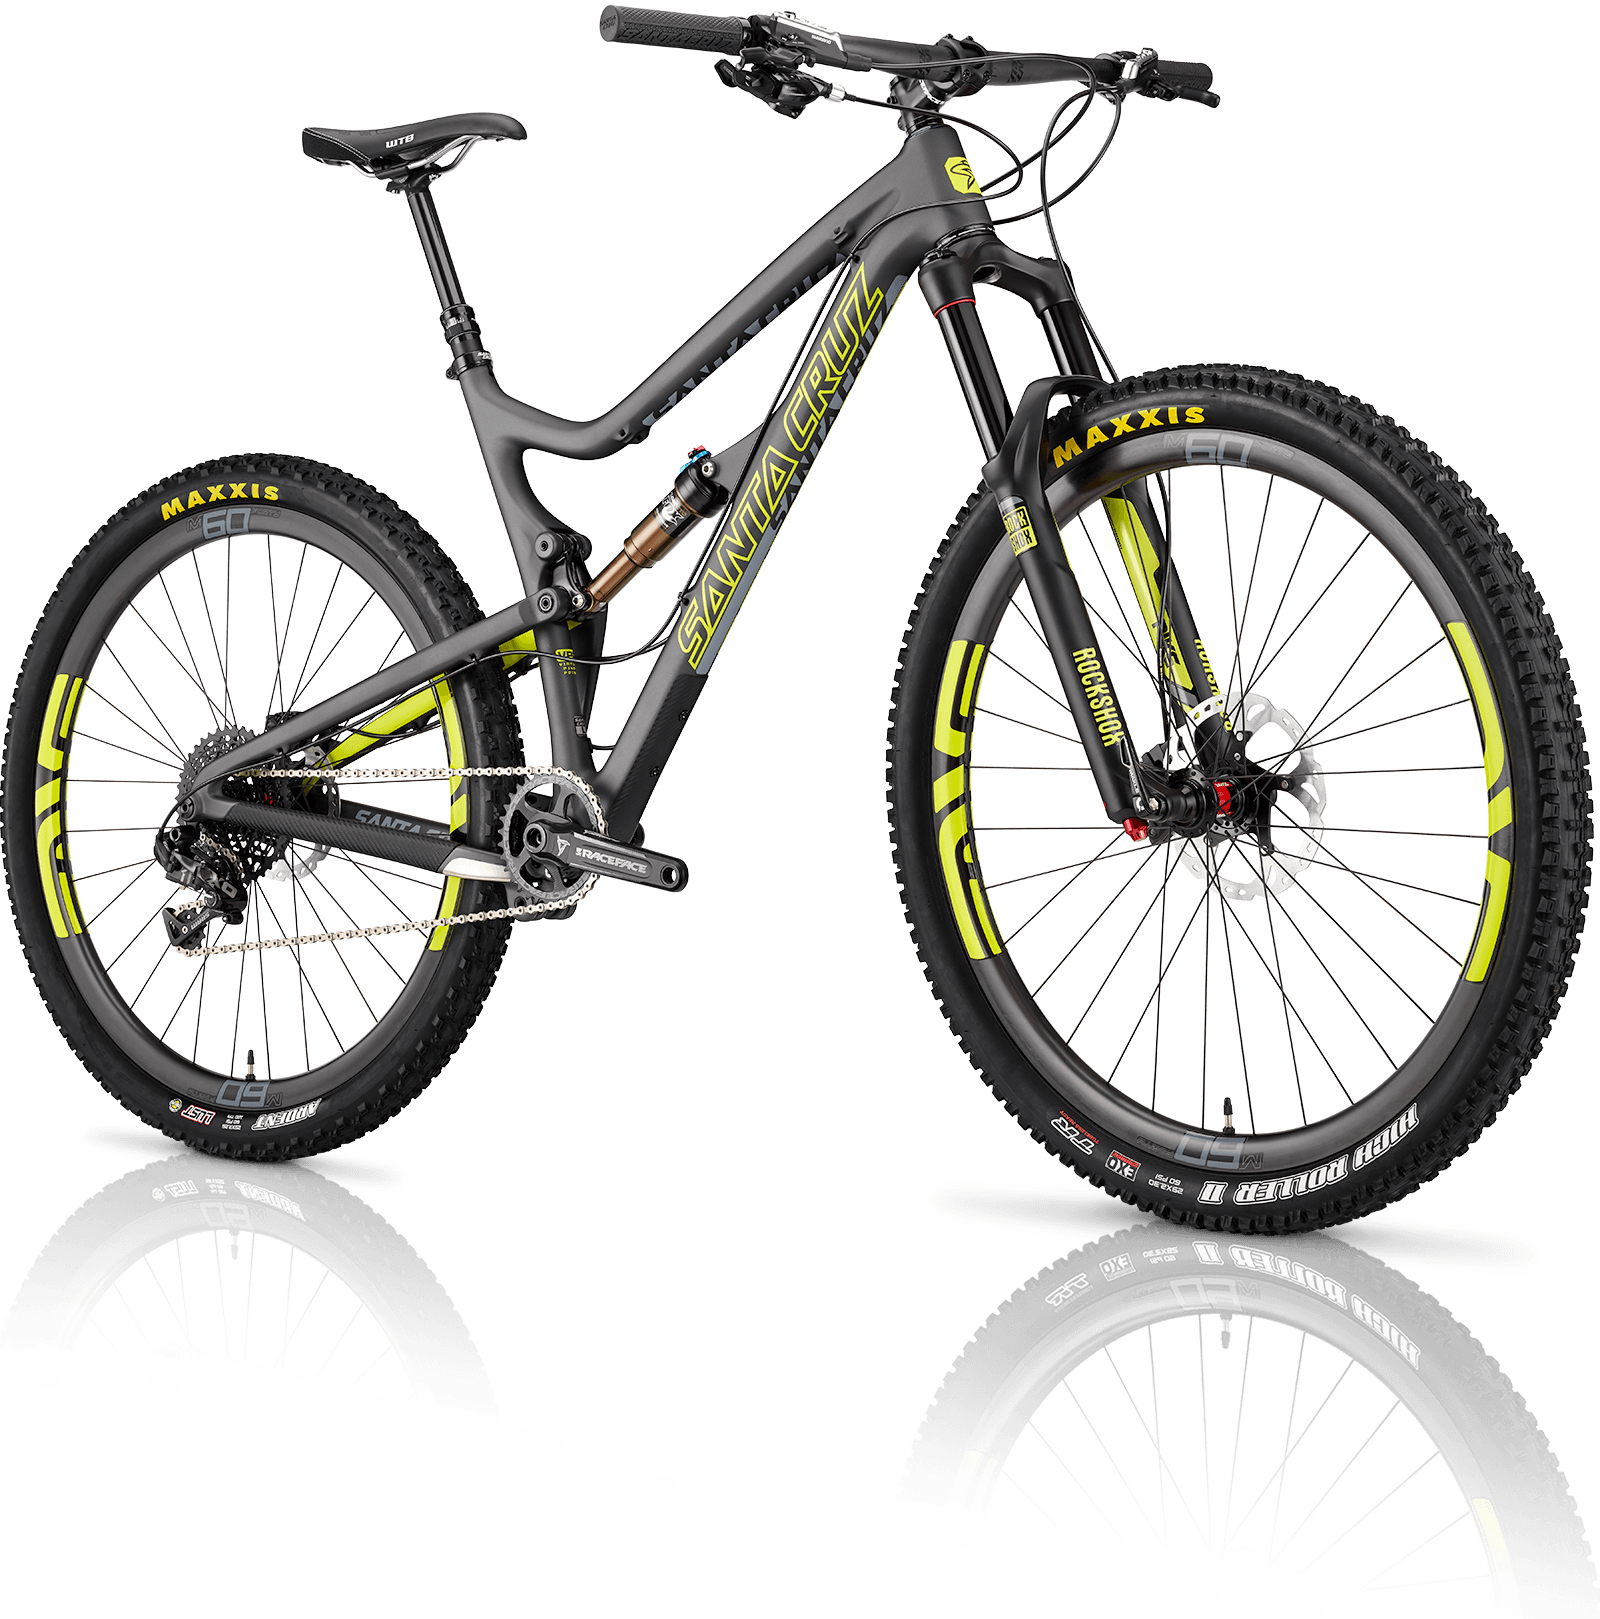 Santa Cruz Bicycles - this is a beautiful machine! | Mountain Bikes ...